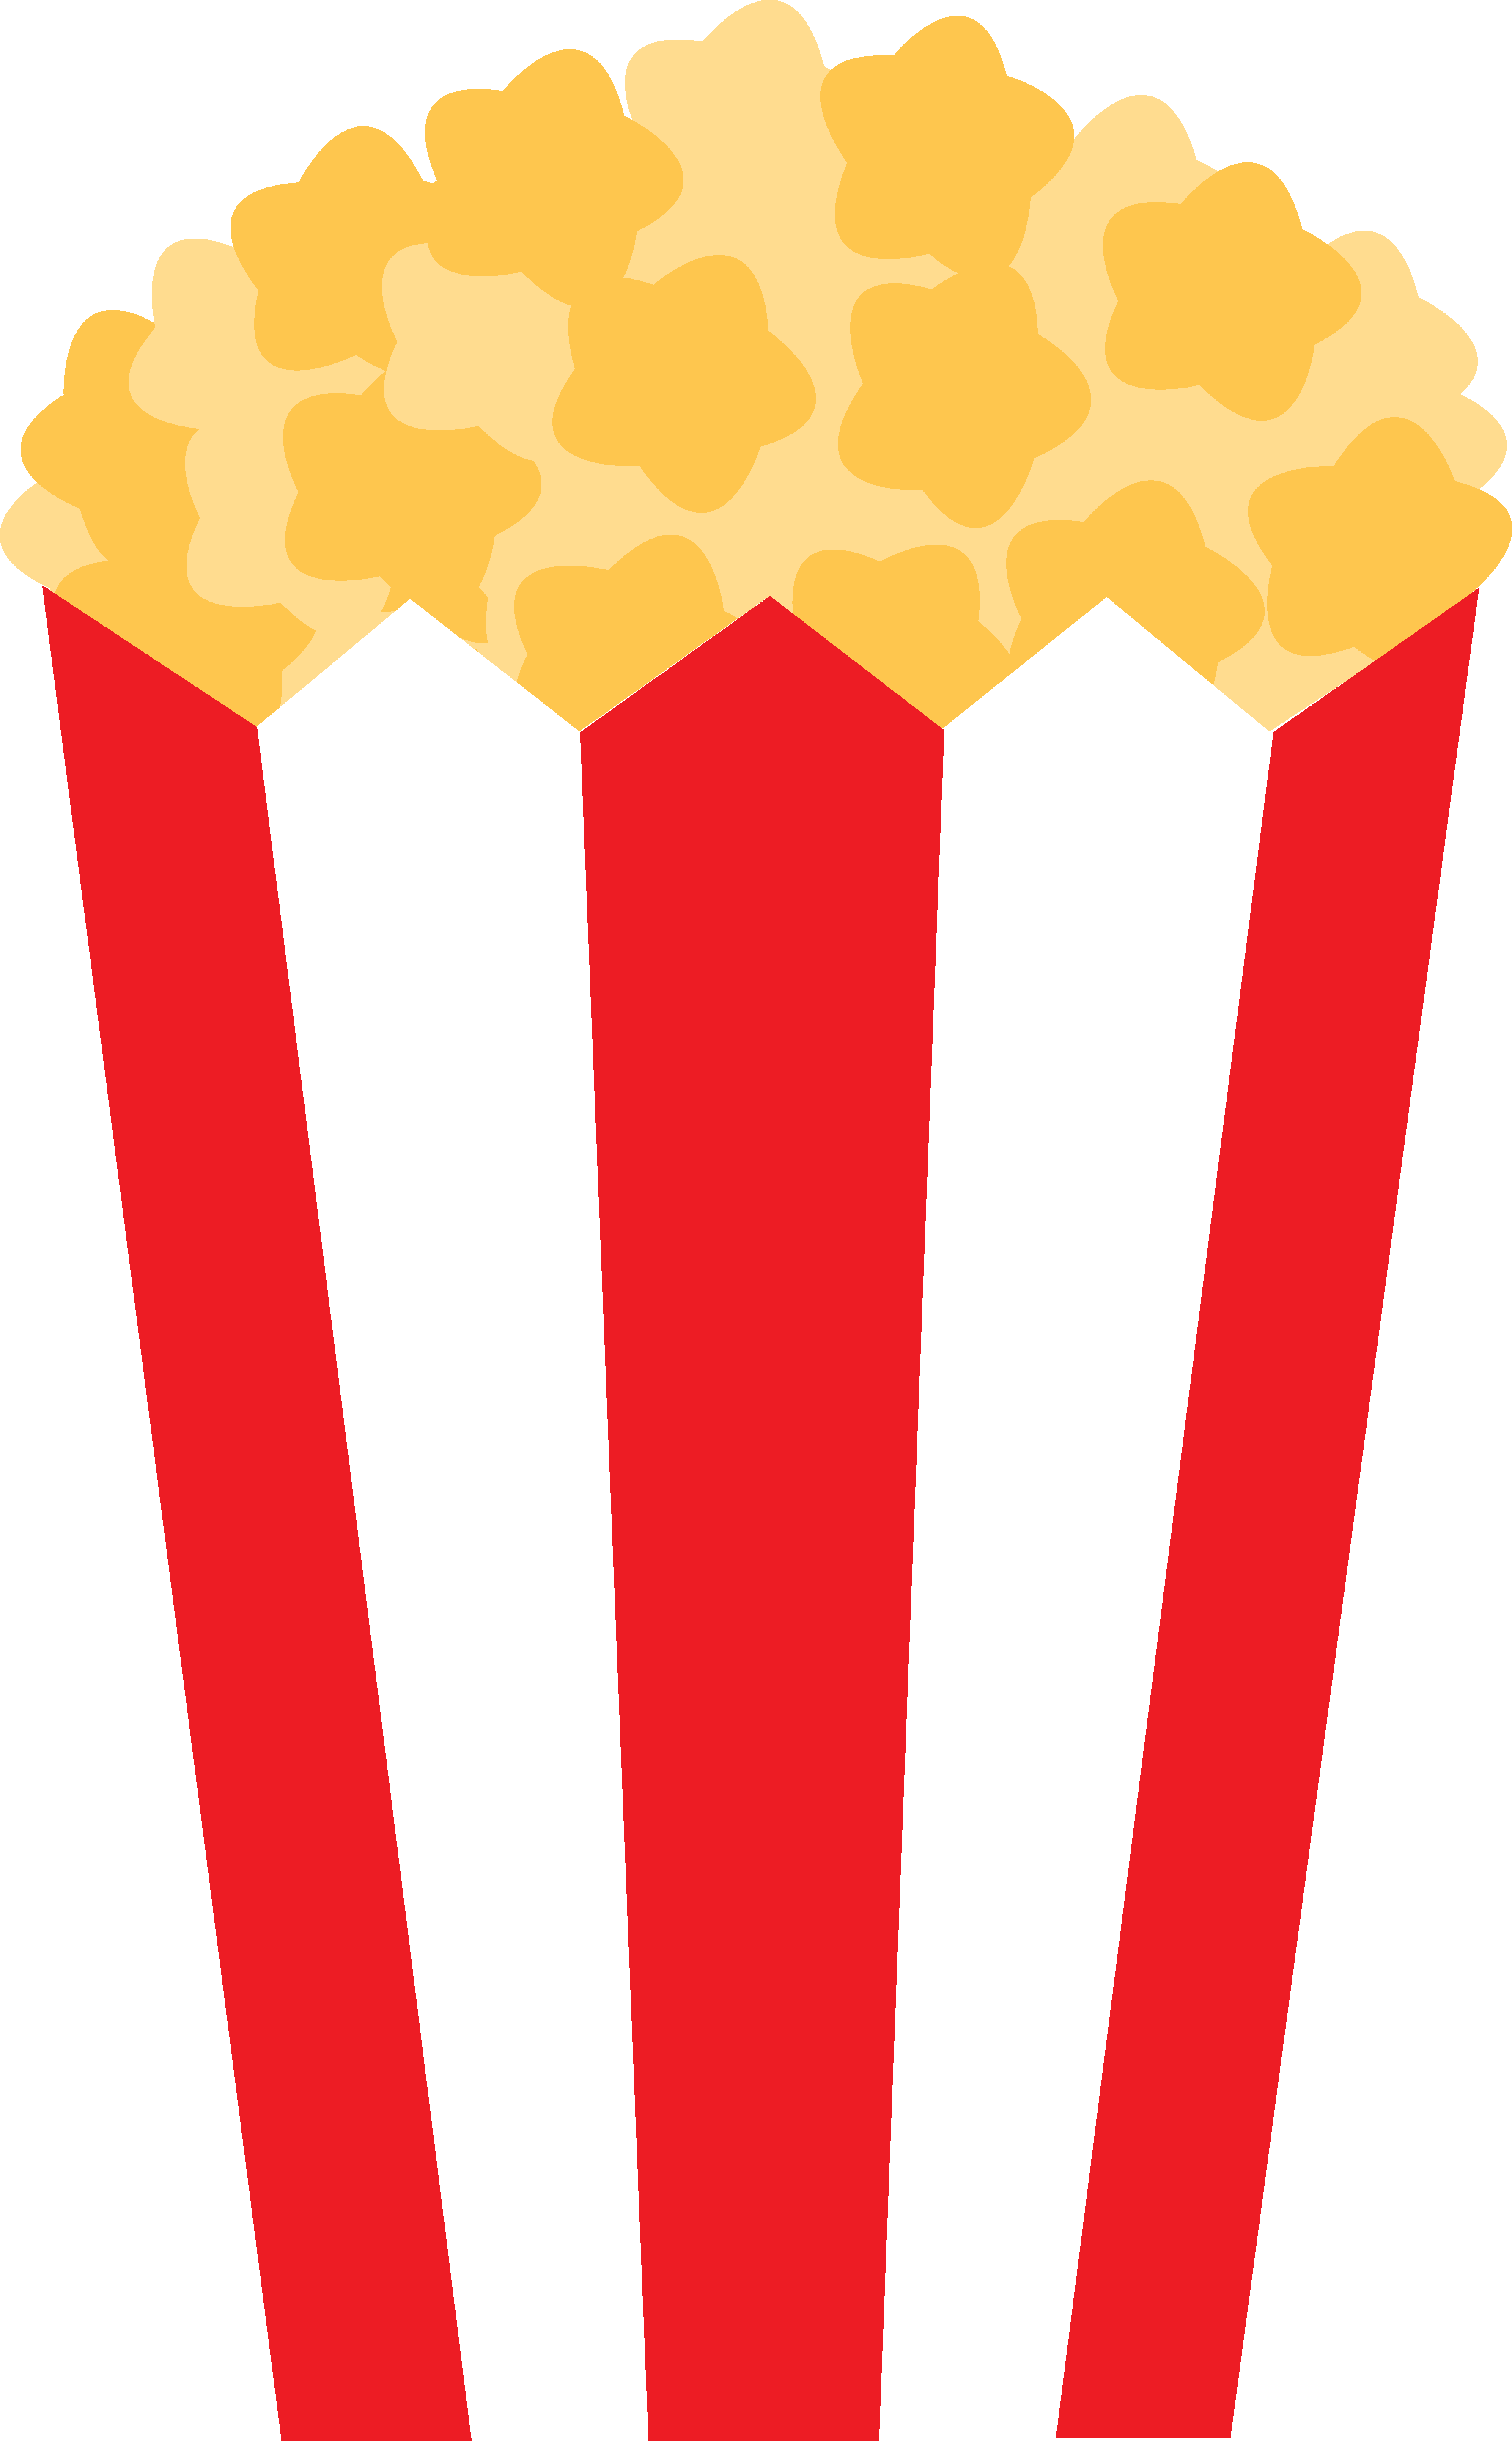 popcorn kernel clipart clipart panda free clipart images popcorn bag clipart black and white popcorn bag clipart black and white